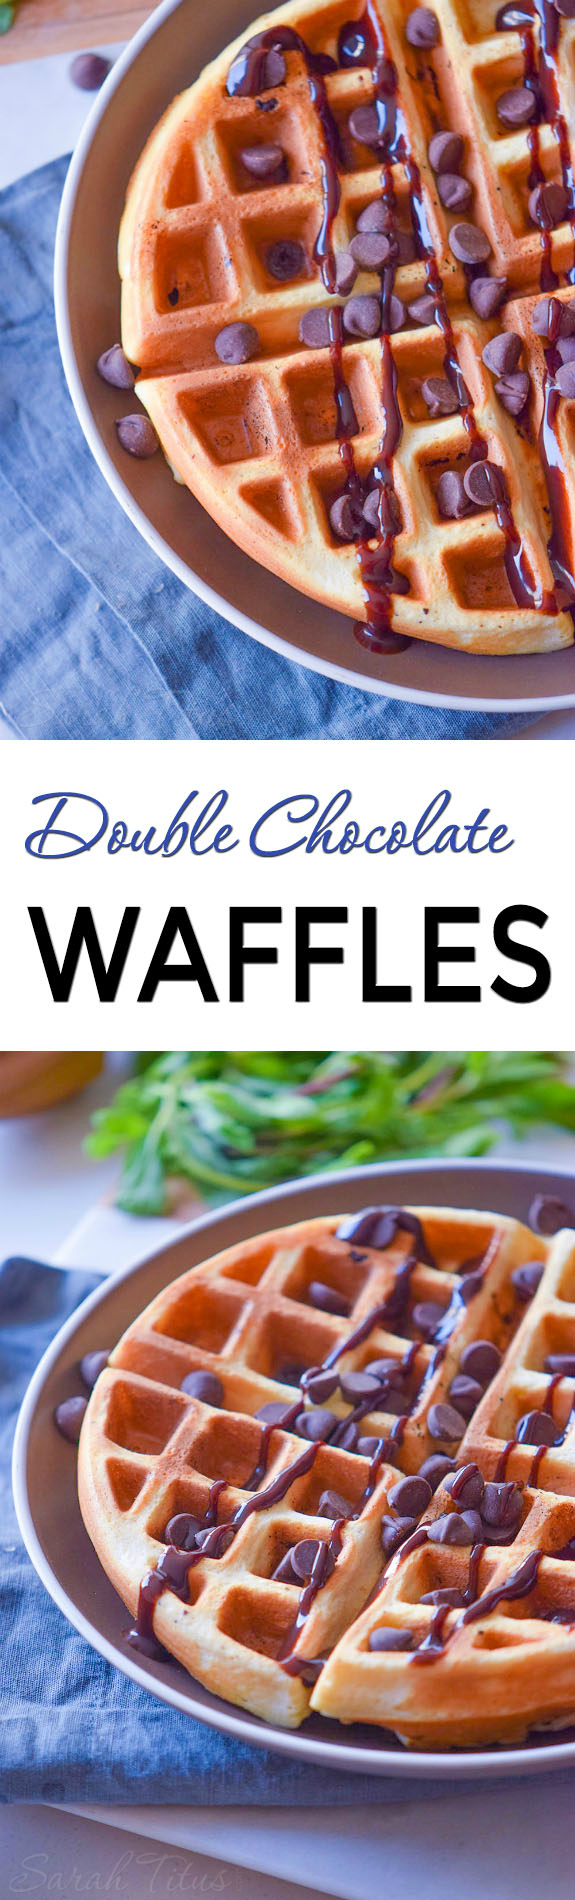 Whether you want a decadent breakfast or a yummy dessert, these double chocolate waffles are sure to satisfy that sweet tooth!